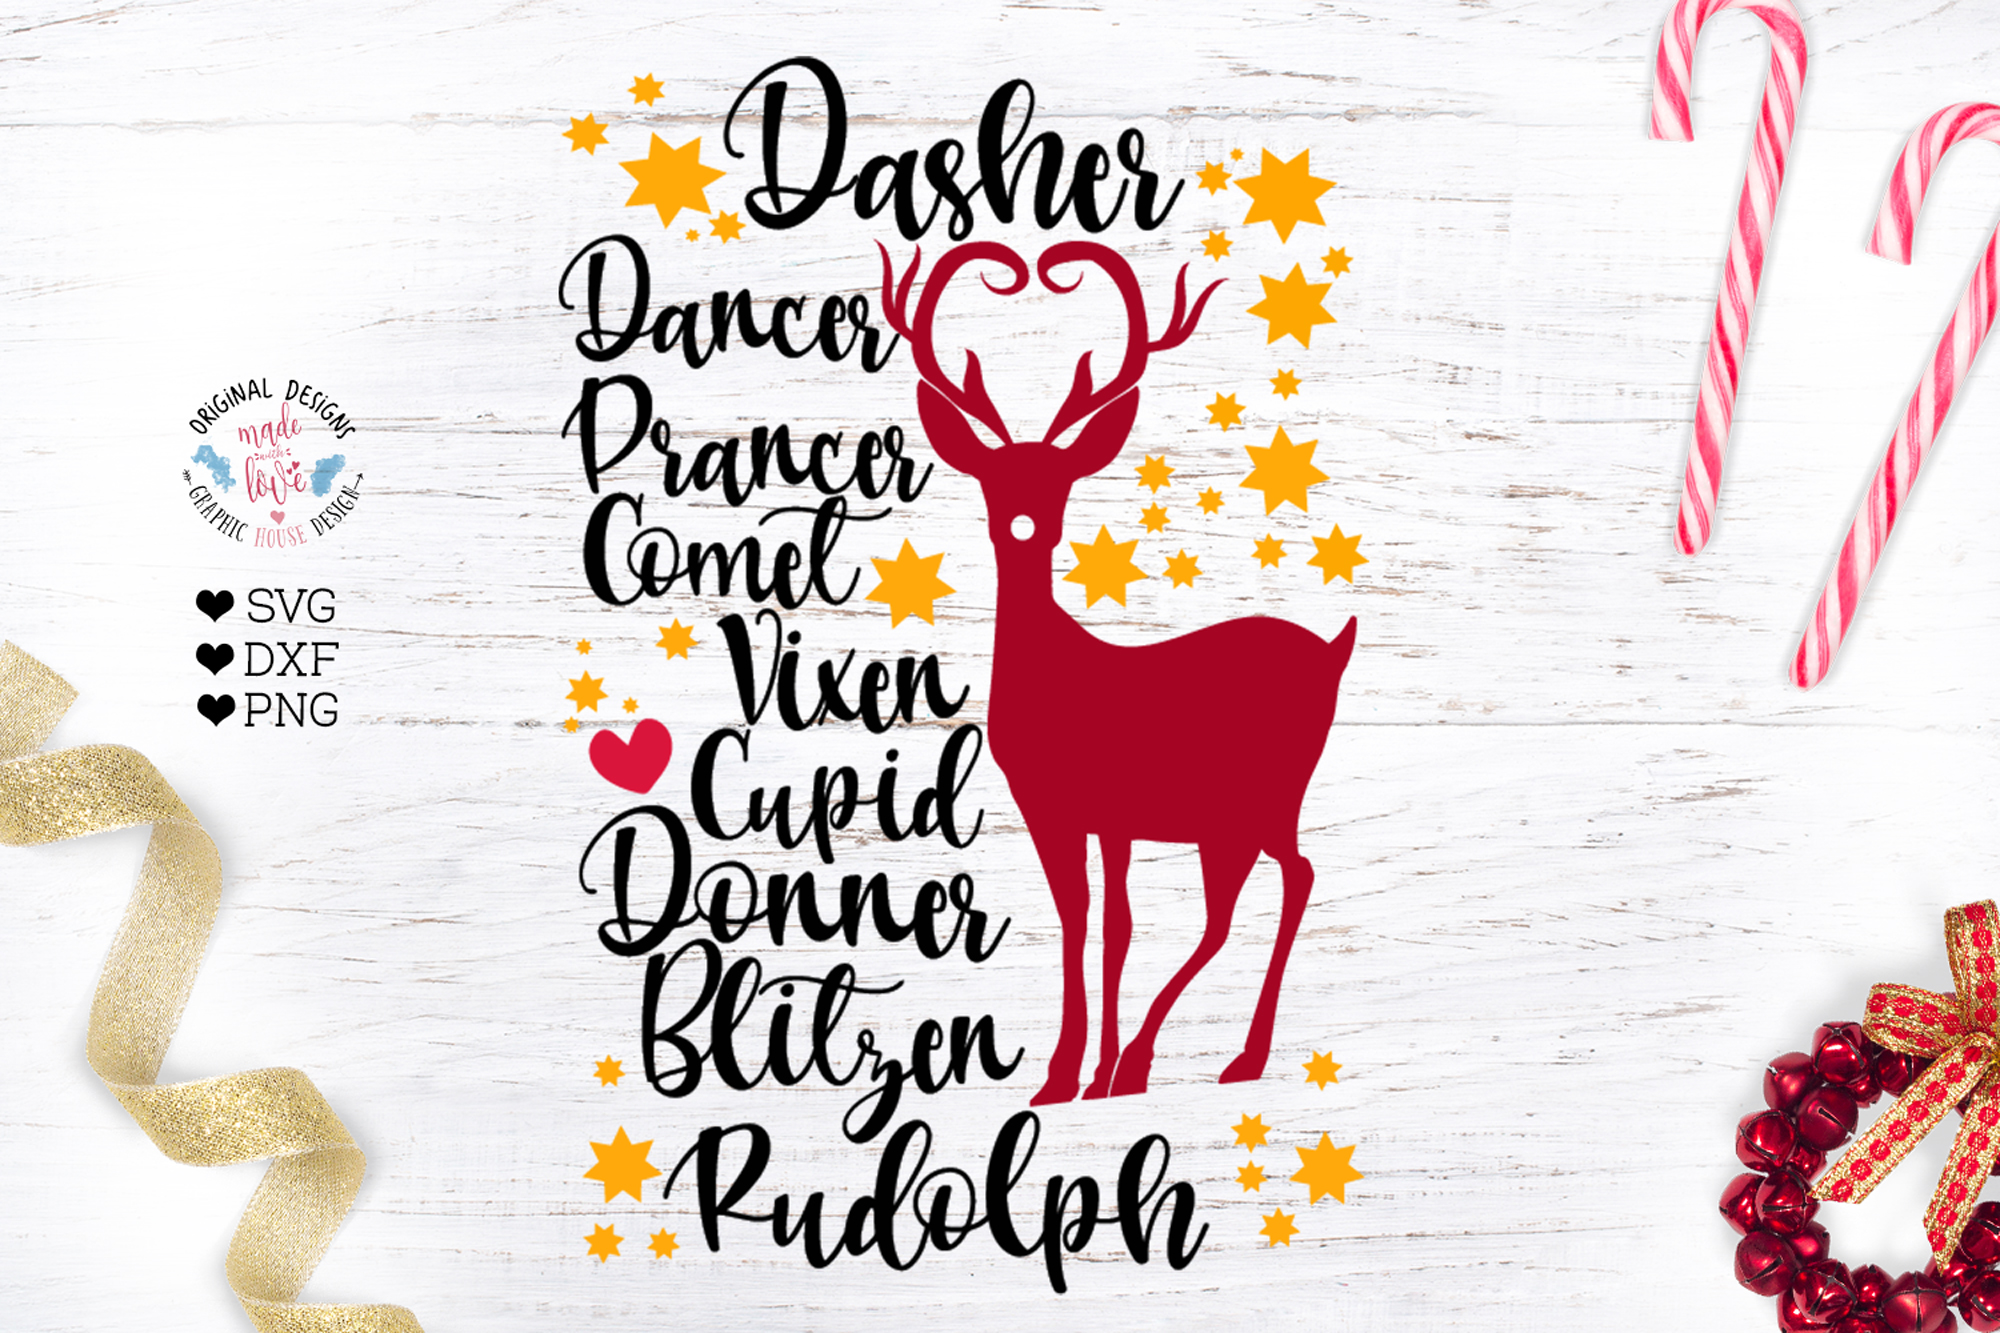 Download Free Christmas Reindeer Names Graphic By Graphichousedesign for Cricut Explore, Silhouette and other cutting machines.